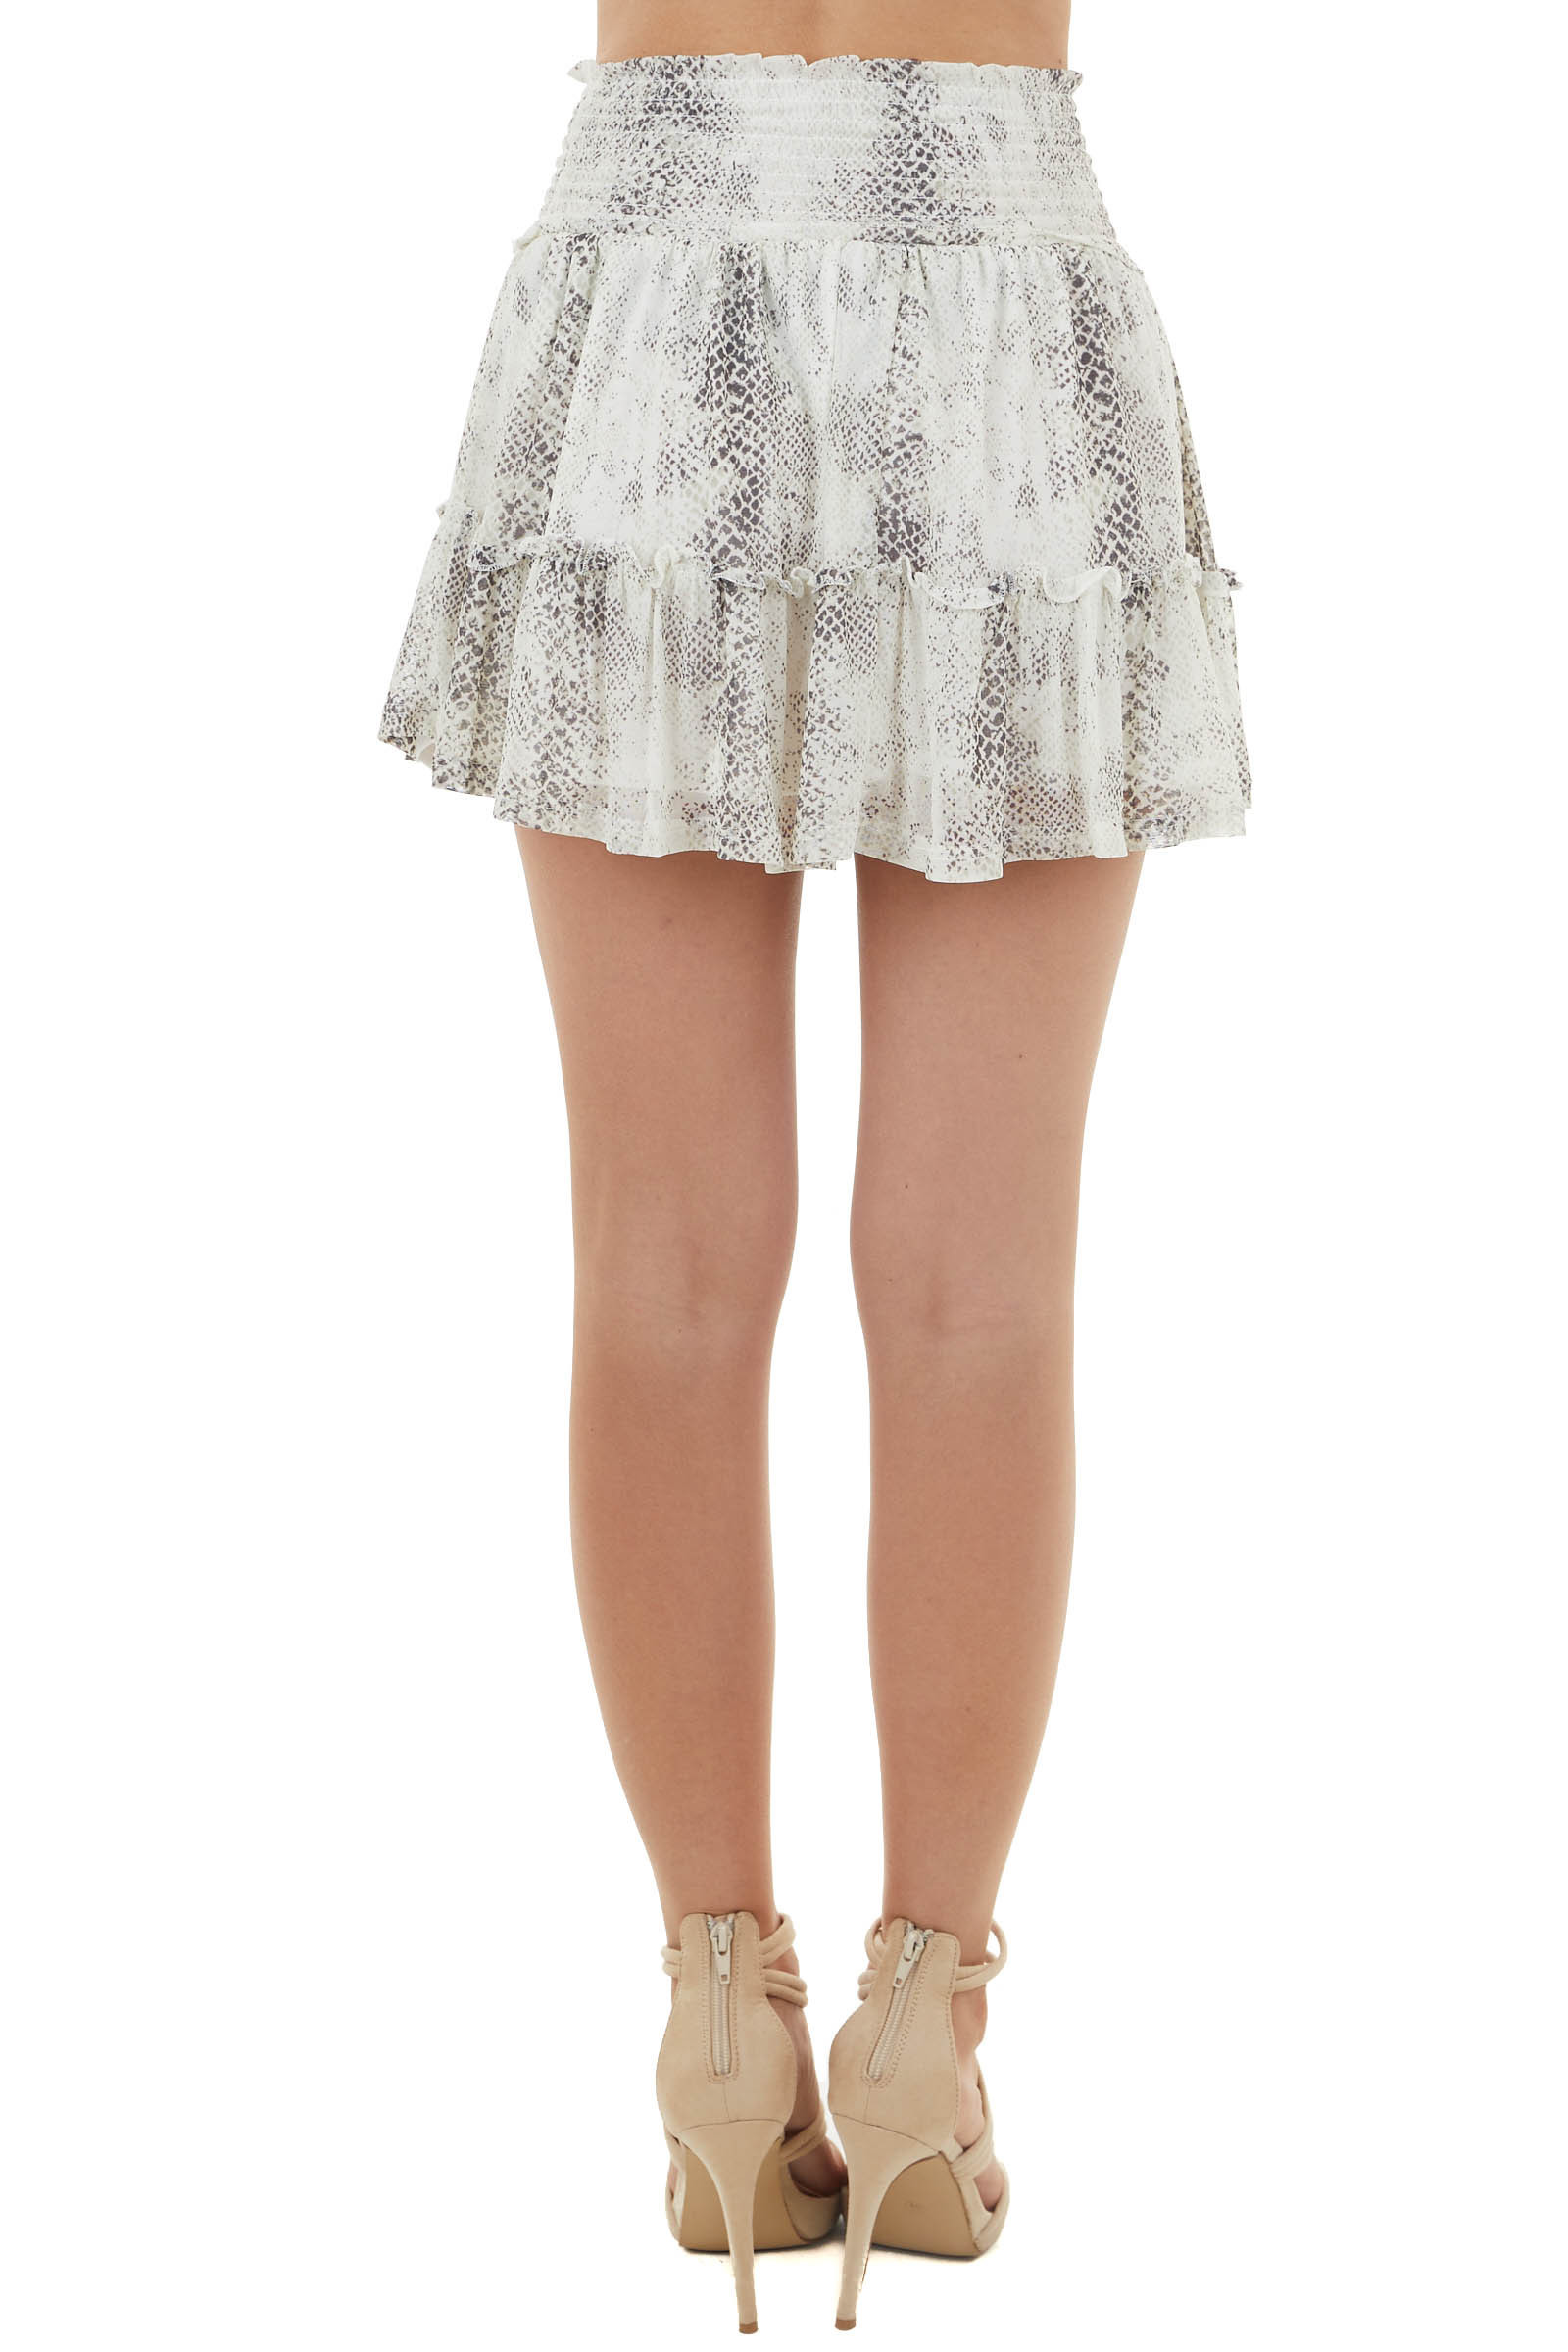 Champagne and Charcoal Snake Print Tiered Mini Skirt